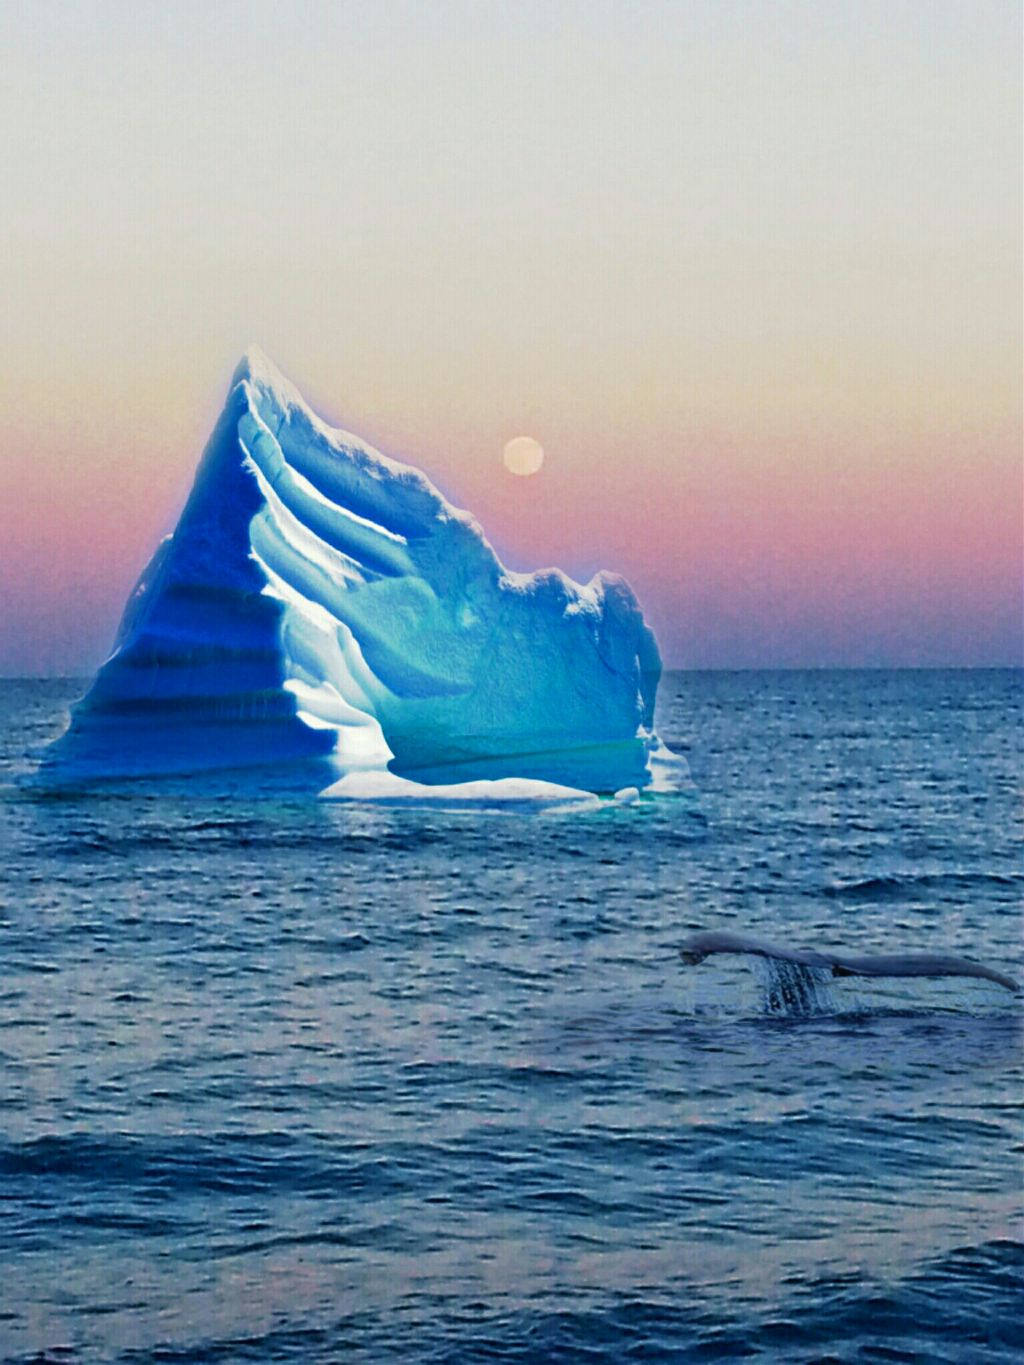 Hi friends Pa good weekend  #sanset  #iceberg  #sea #nature  #blue  #whale  #edit #wehalptheplanet #moonlightdreams  #collage  #simplyedit  #life #colors  #planet  @pa @freetoedit